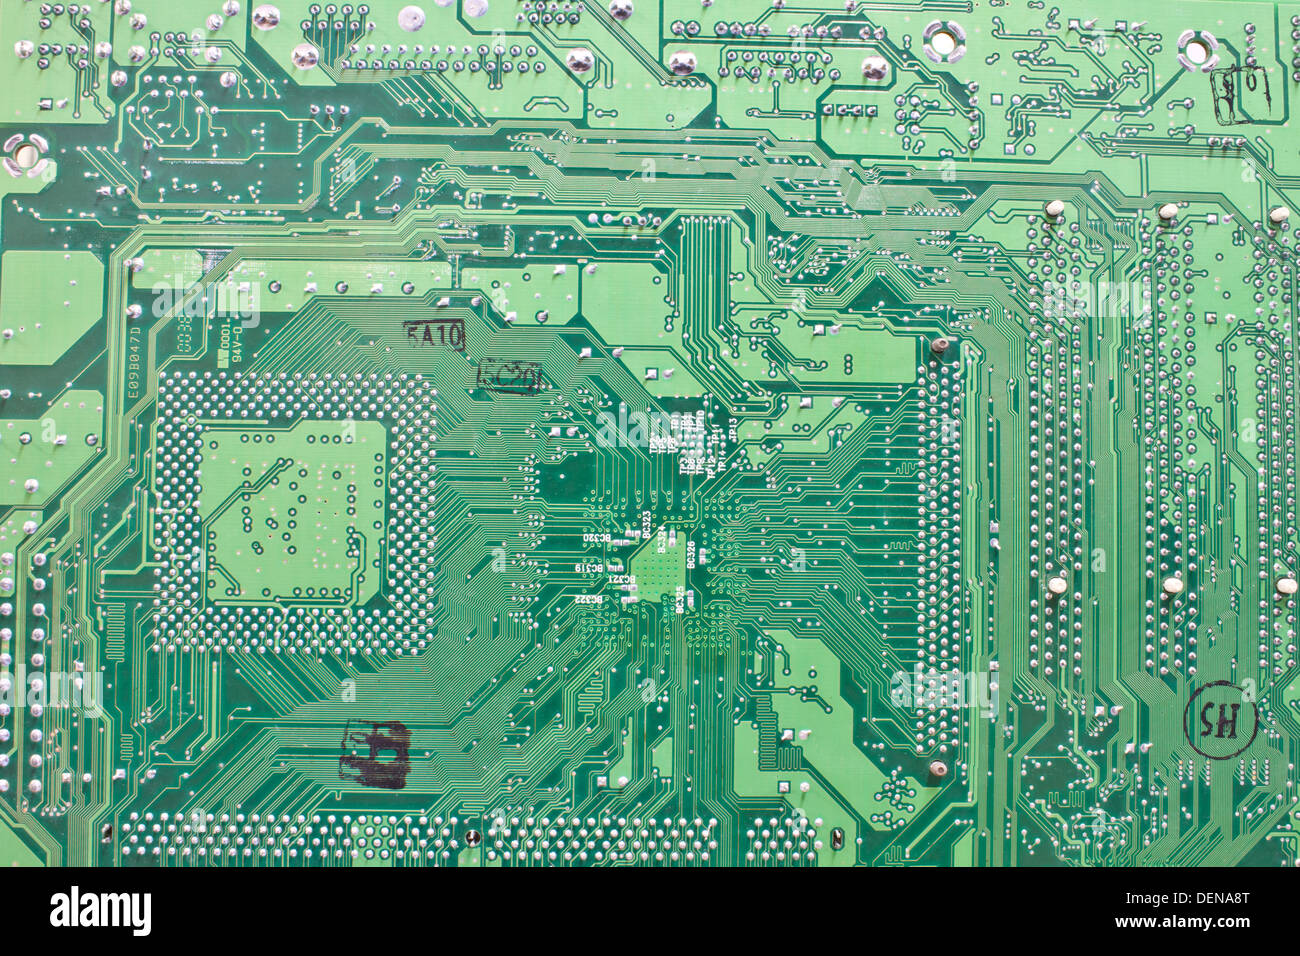 Circuit Board Stock Photos Images Alamy Old Electronic Royalty Free Image Abstract Background With Computer